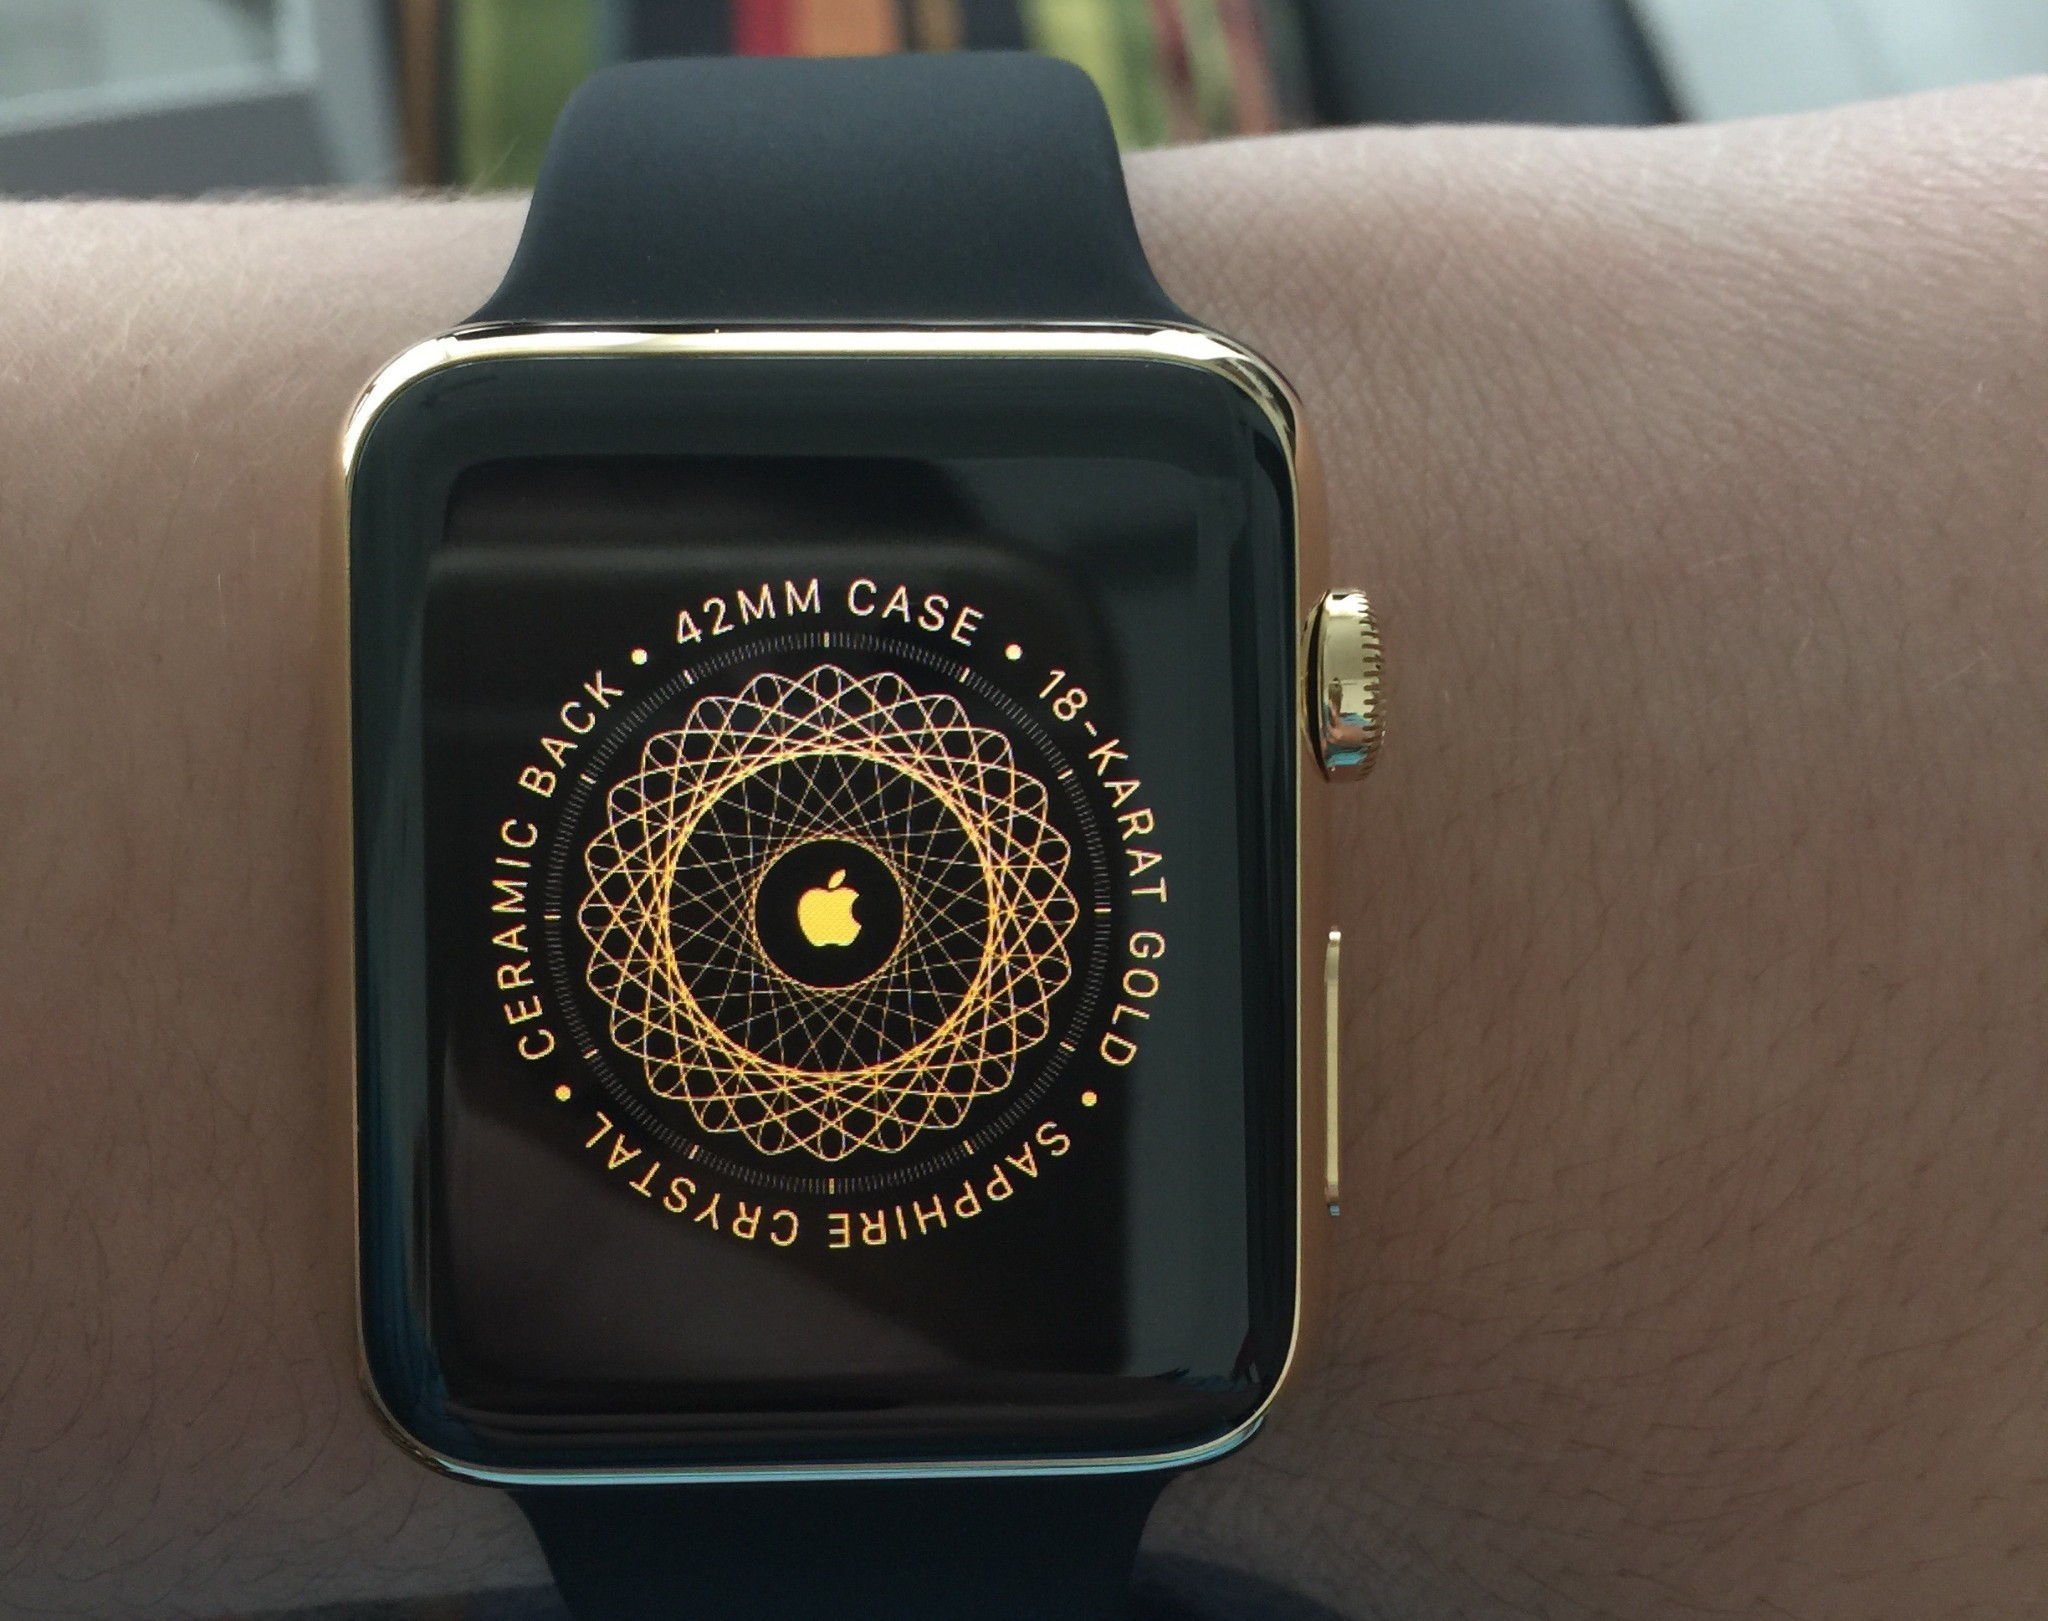 Gold Apple Watch Editions arrive for regular customers with new box, gold pairing screen